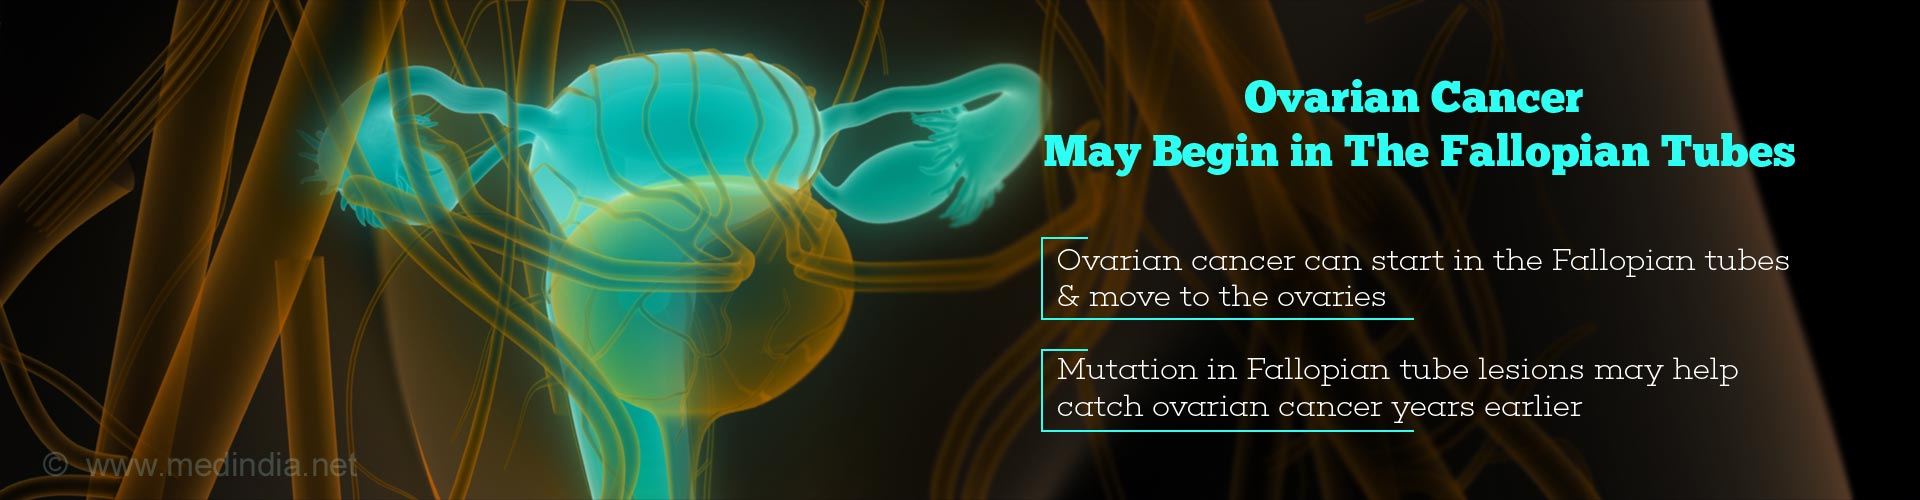 Ovarian Cancer May Originate In The Fallopian Tube